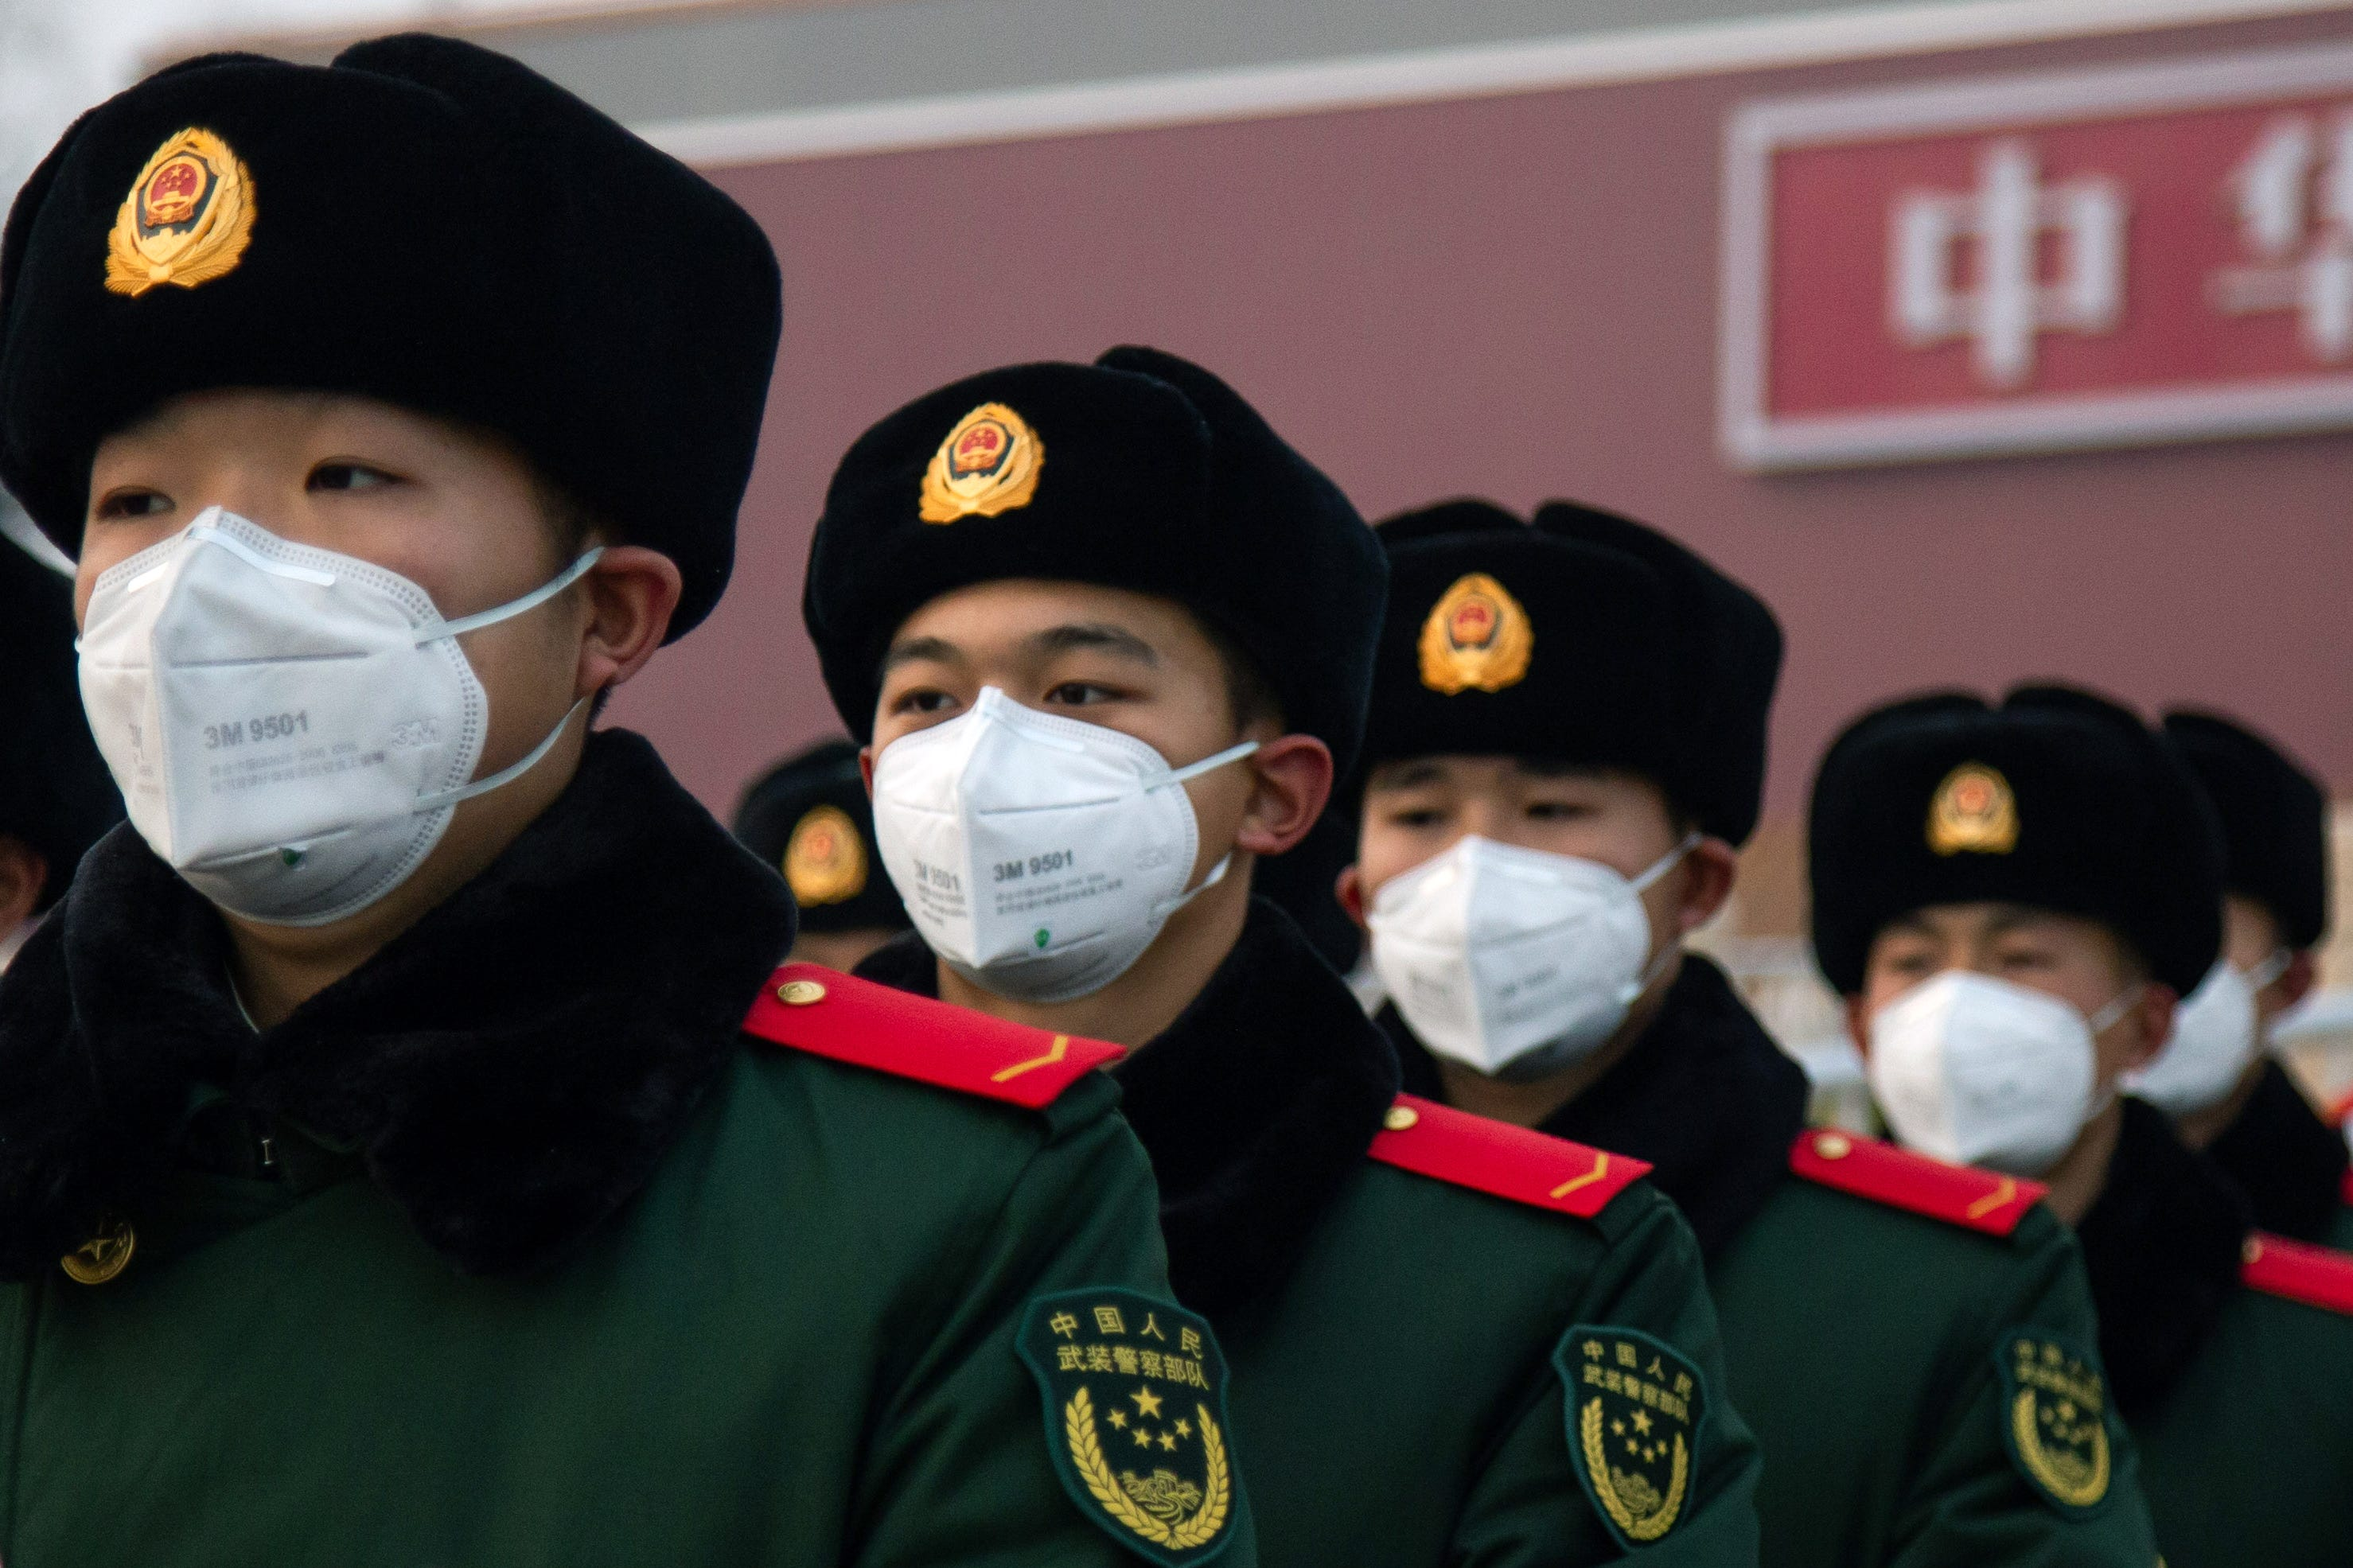 Slide 111 of 113: Chinese police officers wearing masks stand in front of the Tiananmen Gate on Jan. 26, 2020 in Beijing, China. The number of cases of coronavirus rose to 1,975 in mainland China on Sunday. Authorities tightened restrictions on travel and tourism this weekend after putting Wuhan, the capital of Hubei province, under quarantine on Thursday. The spread of the virus corresponds with the first days of the Spring Festival, which is one of the biggest domestic travel weeks of the year in China. Popular tourism landmarks in Beijing including the Forbidden City, Badaling Great Wall, and The Palace Museum were closed to the public starting Saturday. The Beijing Municipal Education Commission announced it will delay reopening schools from kindergarten to university. The death toll on Sunday rose to 56. The majority of fatalities are in Wuhan where the first cases of the virus were reported last month.